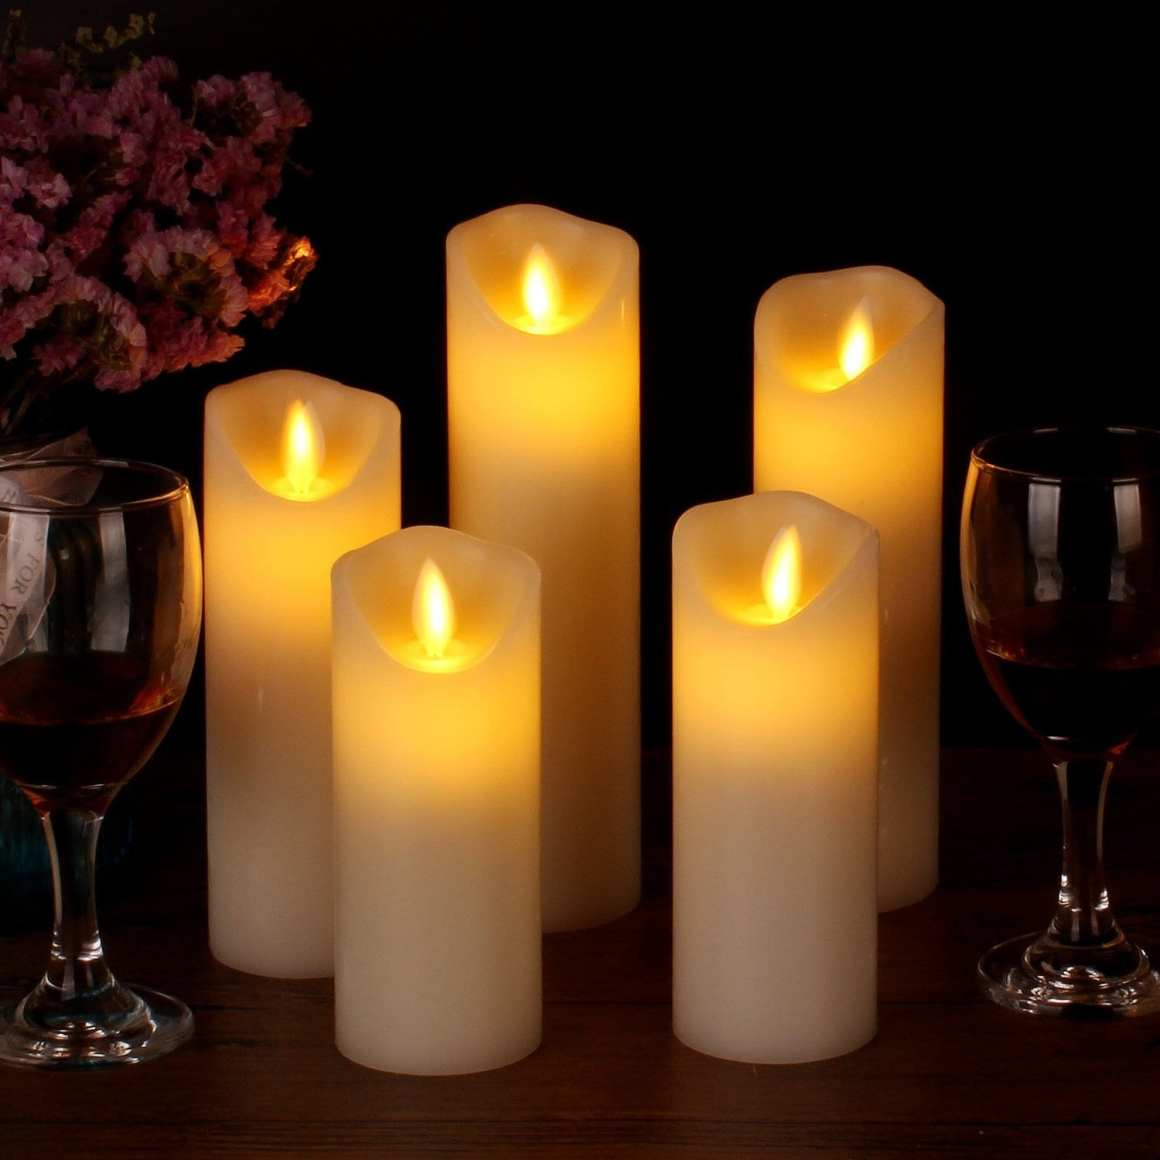 cozy home flameless candles